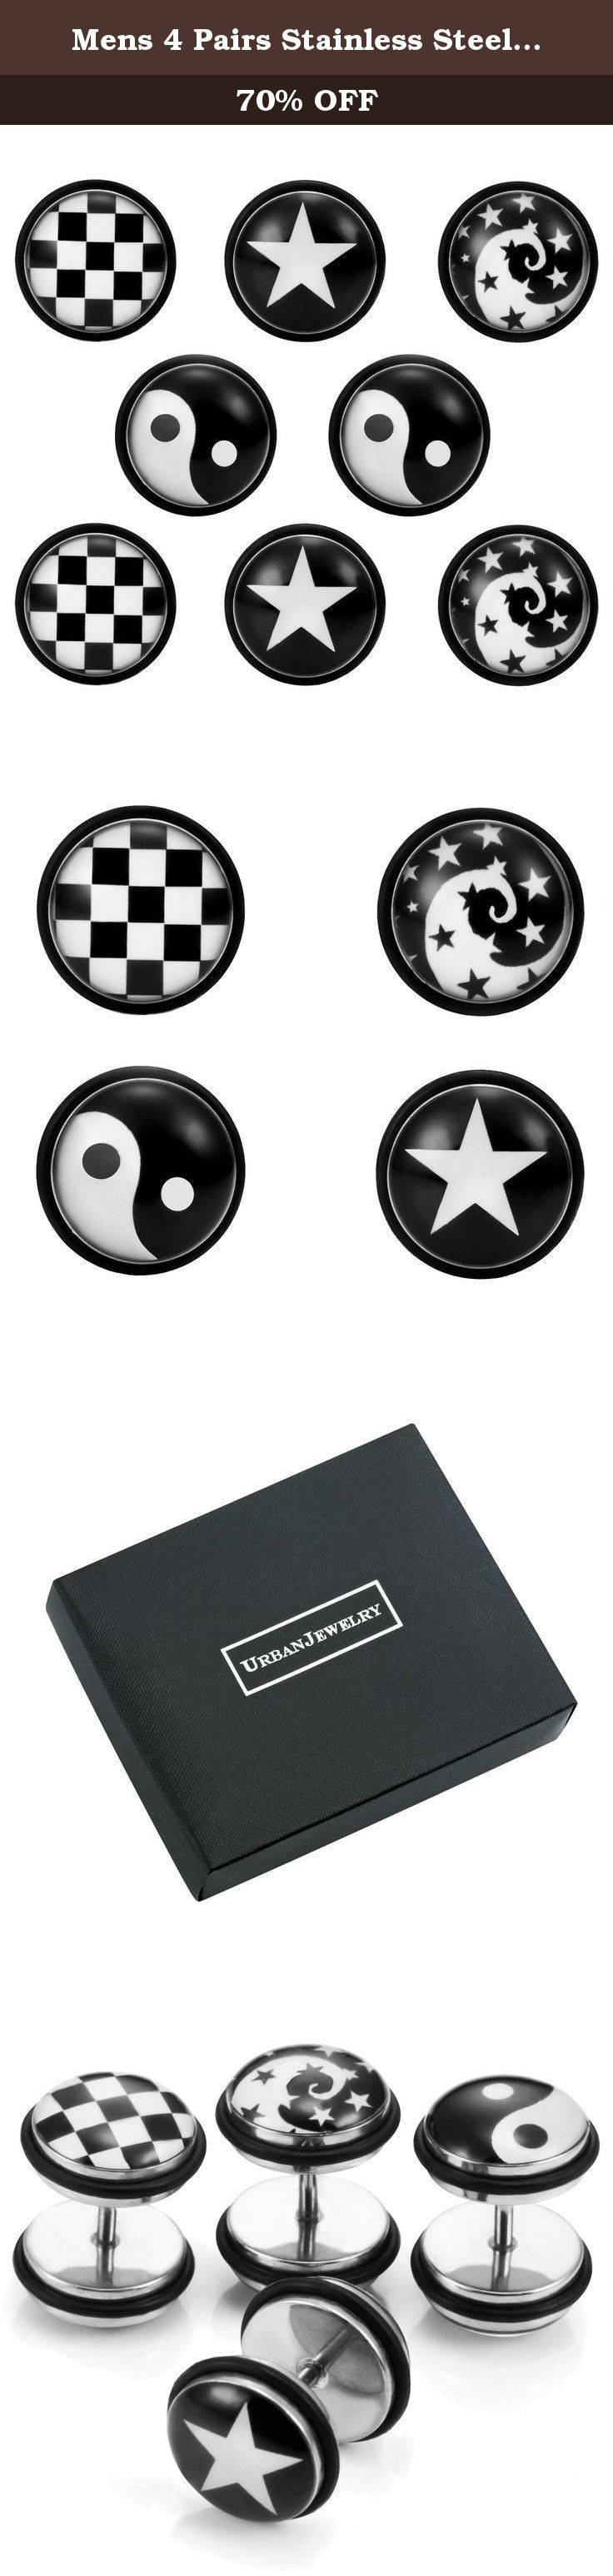 Mens 4 Pairs Stainless Steel Stud Earrings Set with Star, Swirl, Checkered and Yin & Yang Designs. Unisex Black and White Stainless Steel Stud Earrings Set - Includes 4 Pairs of Studs with Star, Swirl, Checkered and Yin & Yang Add a touch of personality to every outfit with the trendy jewelry designs featured in the Unisex Black and White Stainless Steel Stud Earrings Set. The earring set features styles that are truly on the pulse of the latest trends and that make fashionable choices…